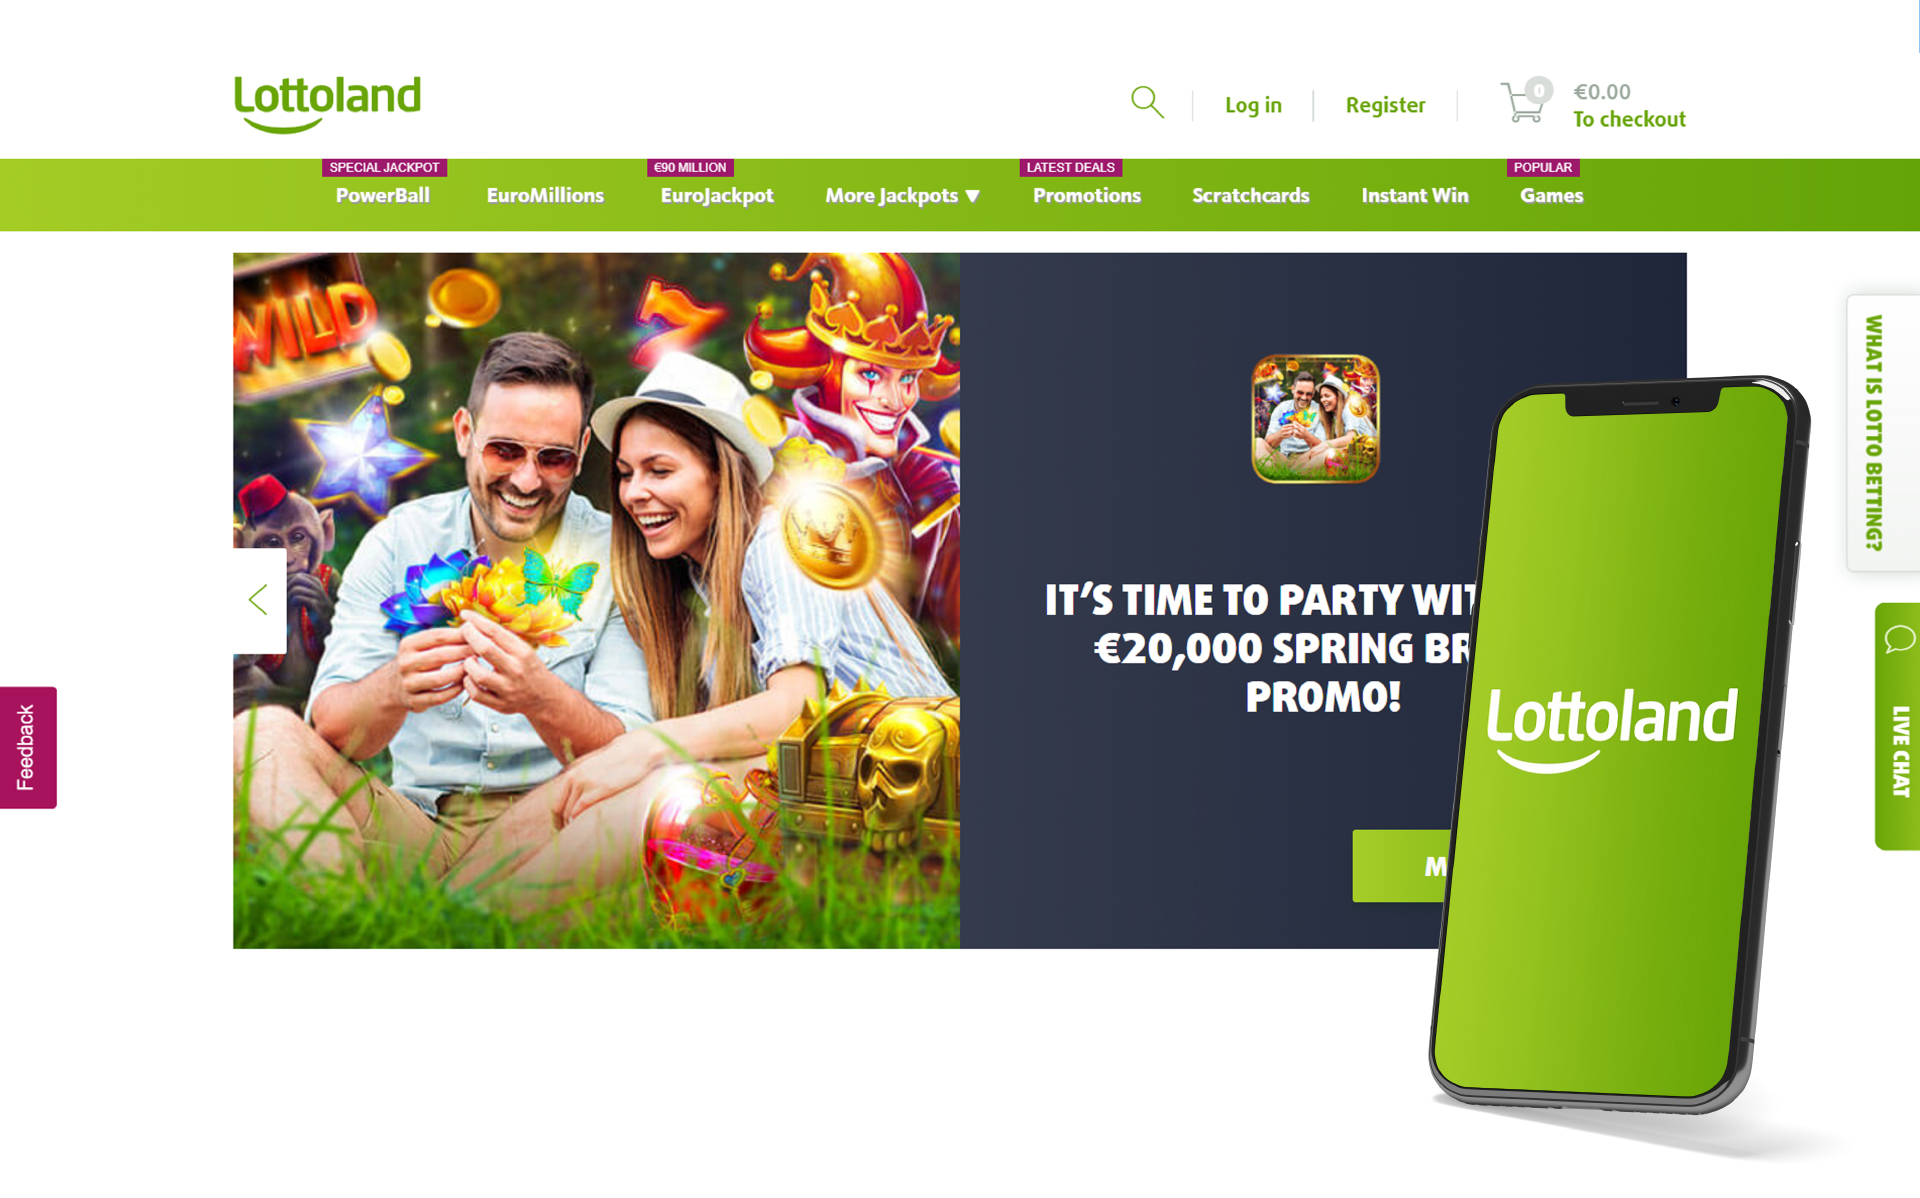 Lottoland is a leader among online lottery operators.